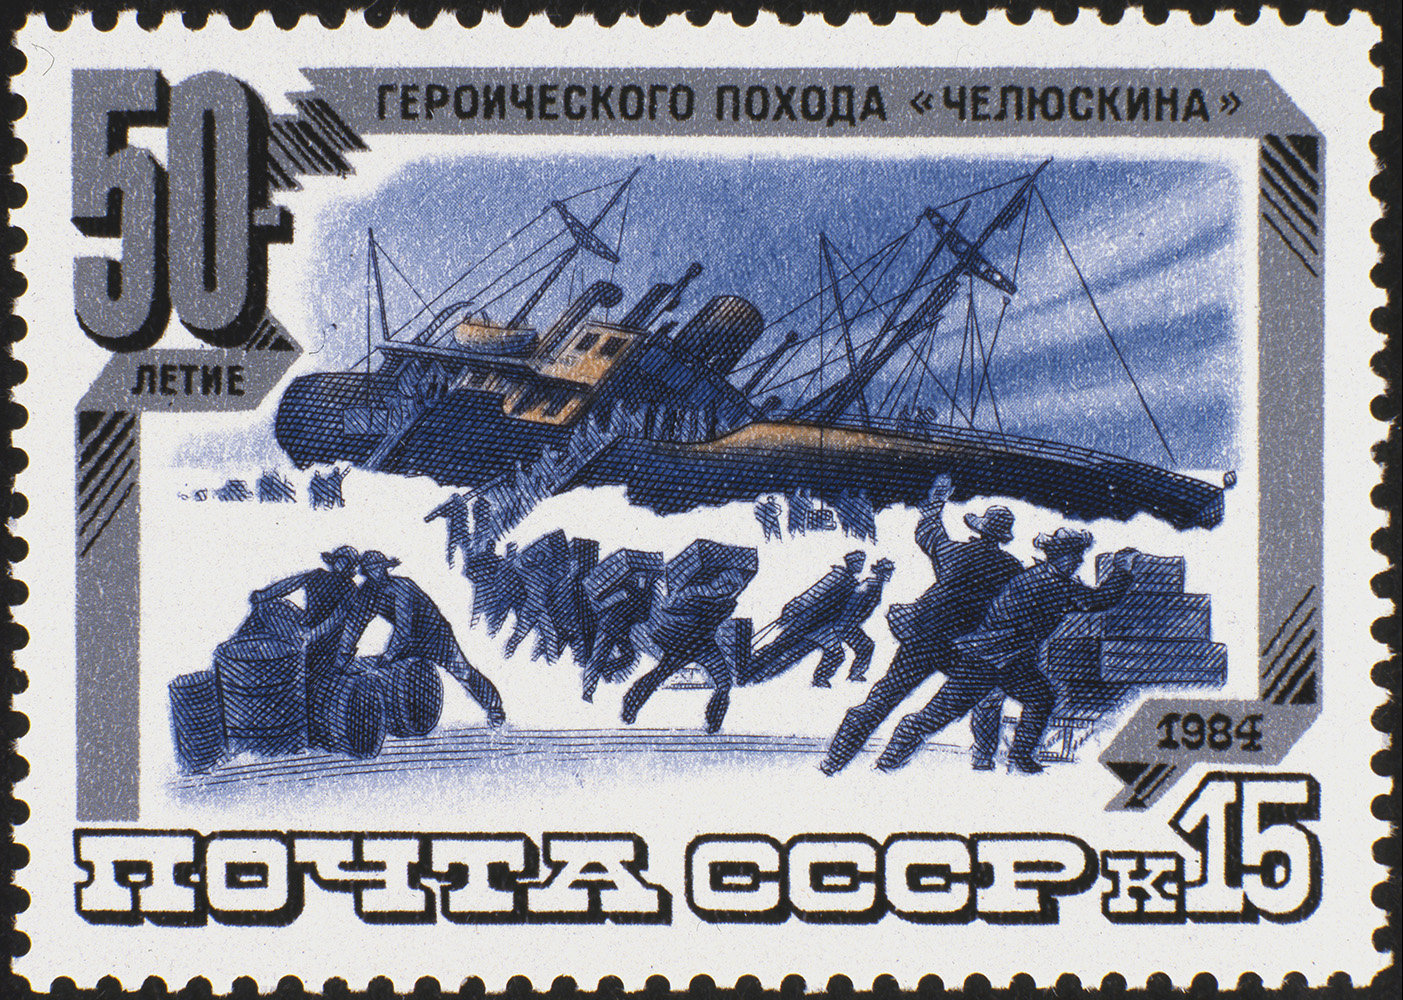 Reproduction of the post stamp 50th Anniversary of Heroic March of Chelyuskin (1984)